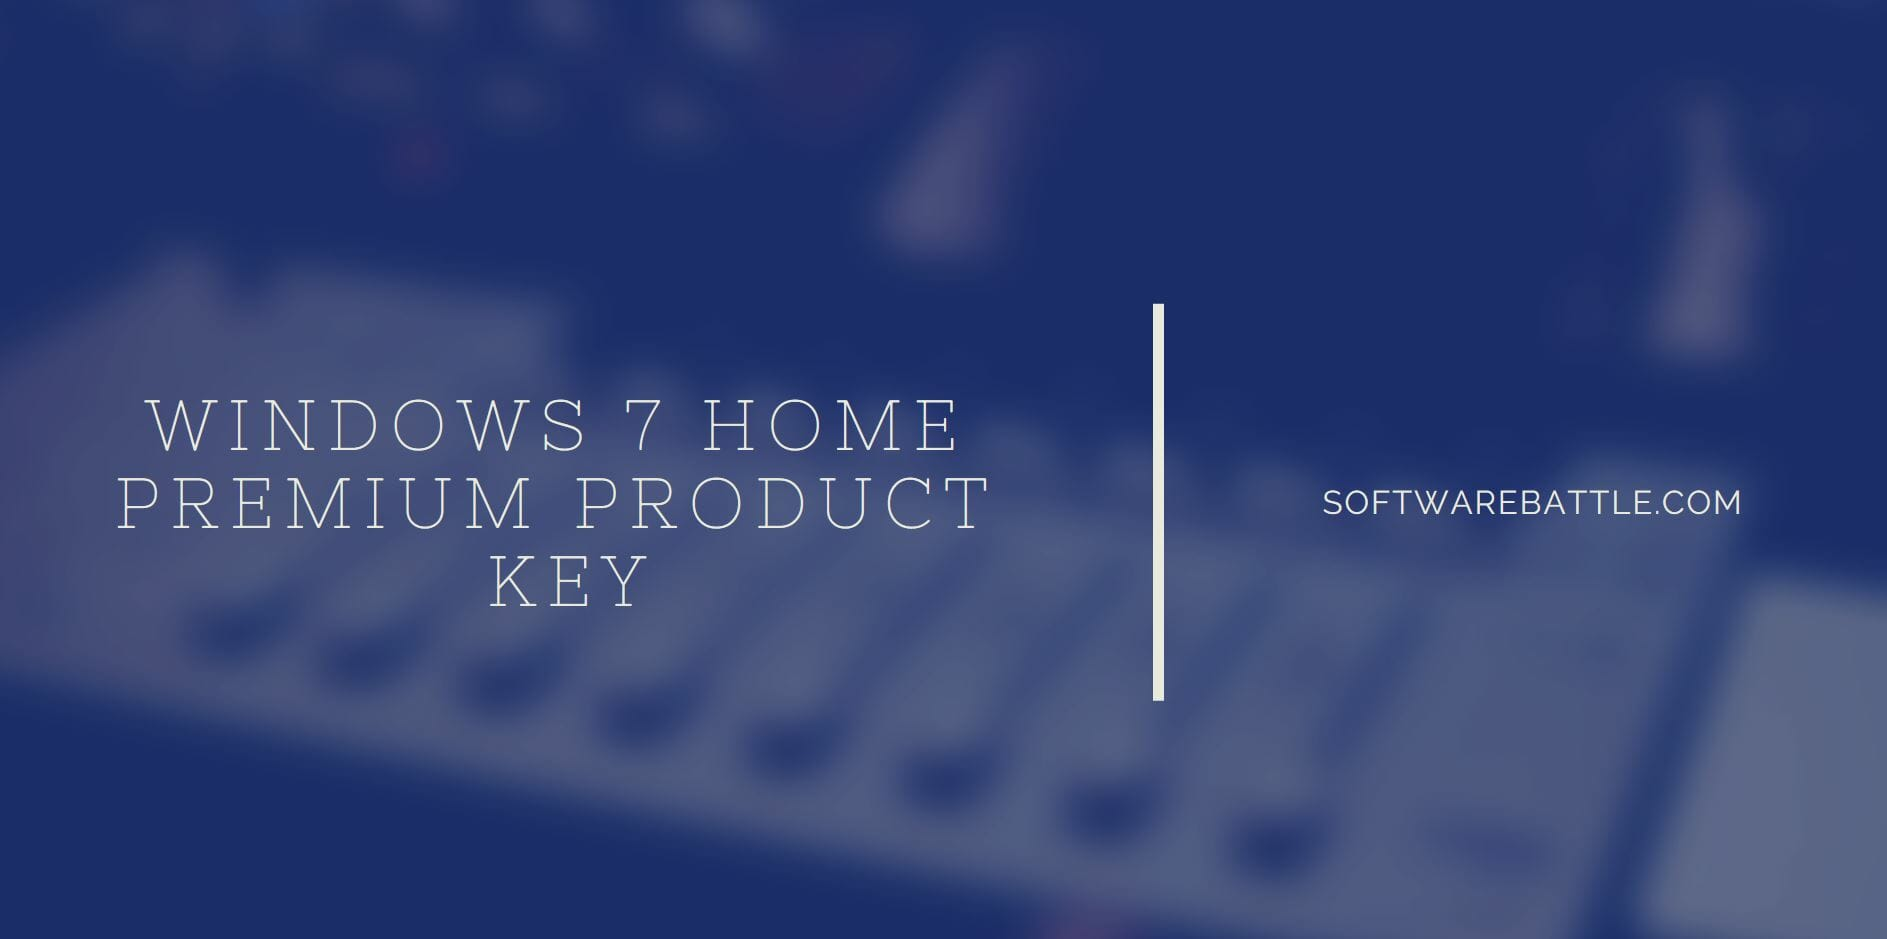 WORKING Windows 7 Home Premium Product Key - SoftwareBattle